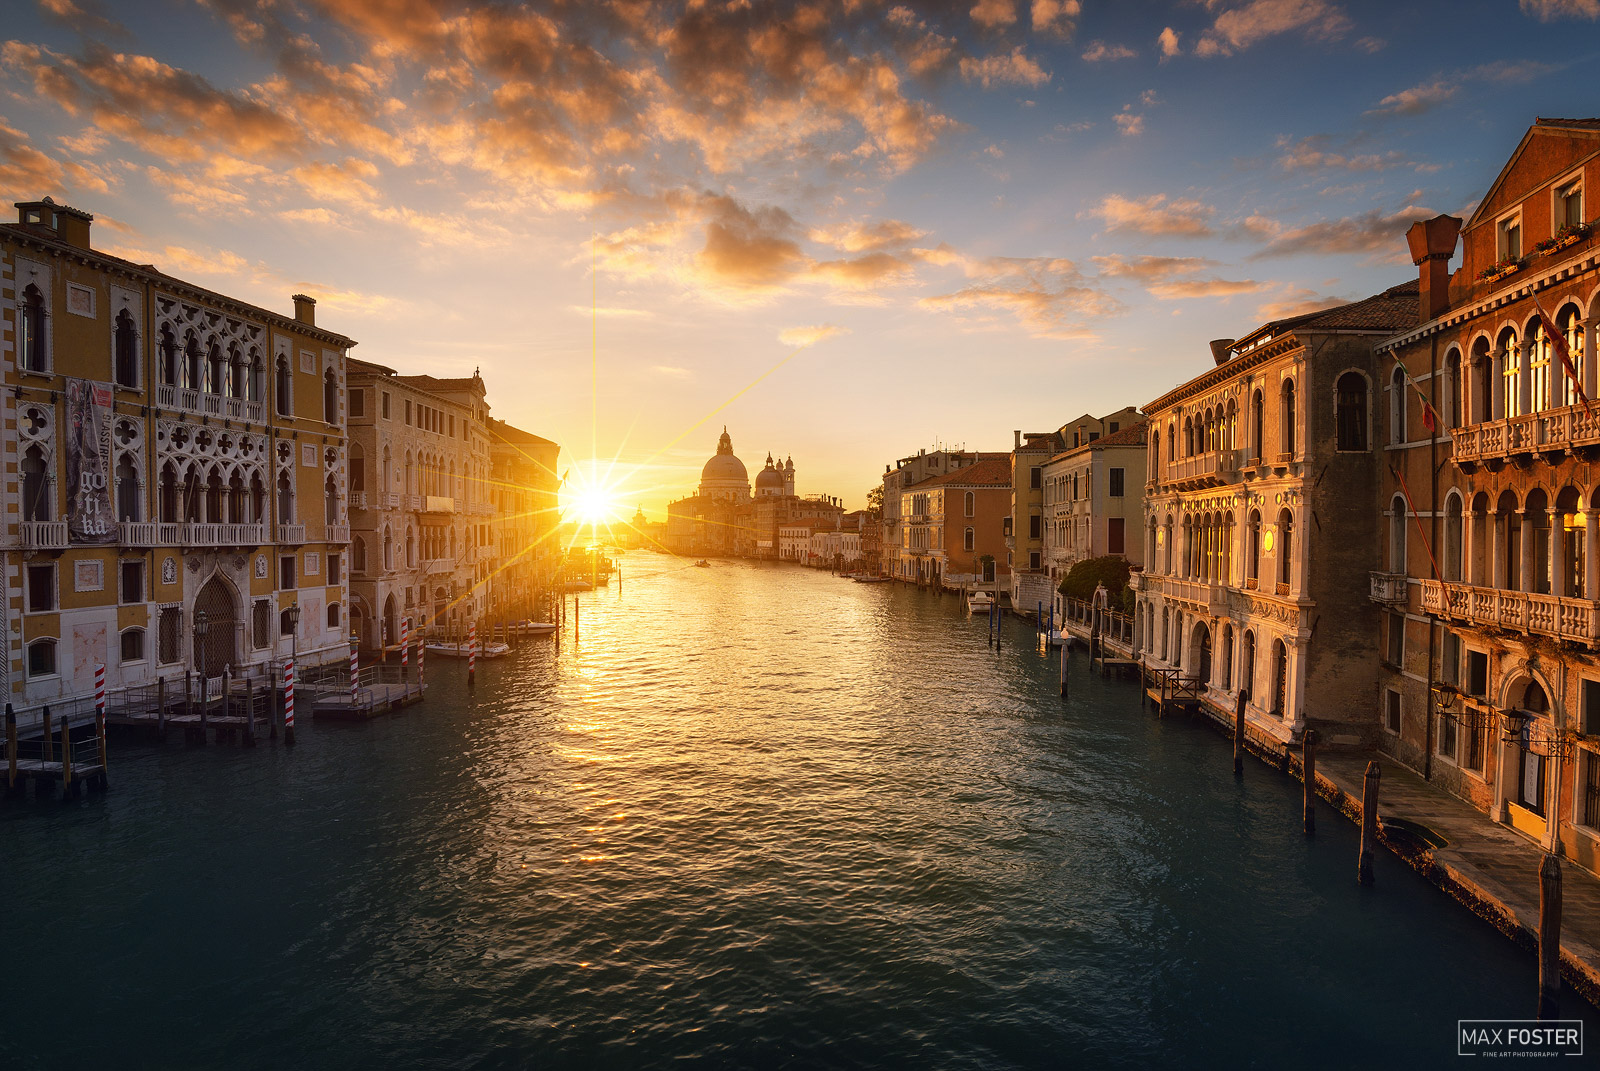 Venice, Italy, Gilded, Grand Canal, Canal, Channel, Lagoon, Palazzos, photo